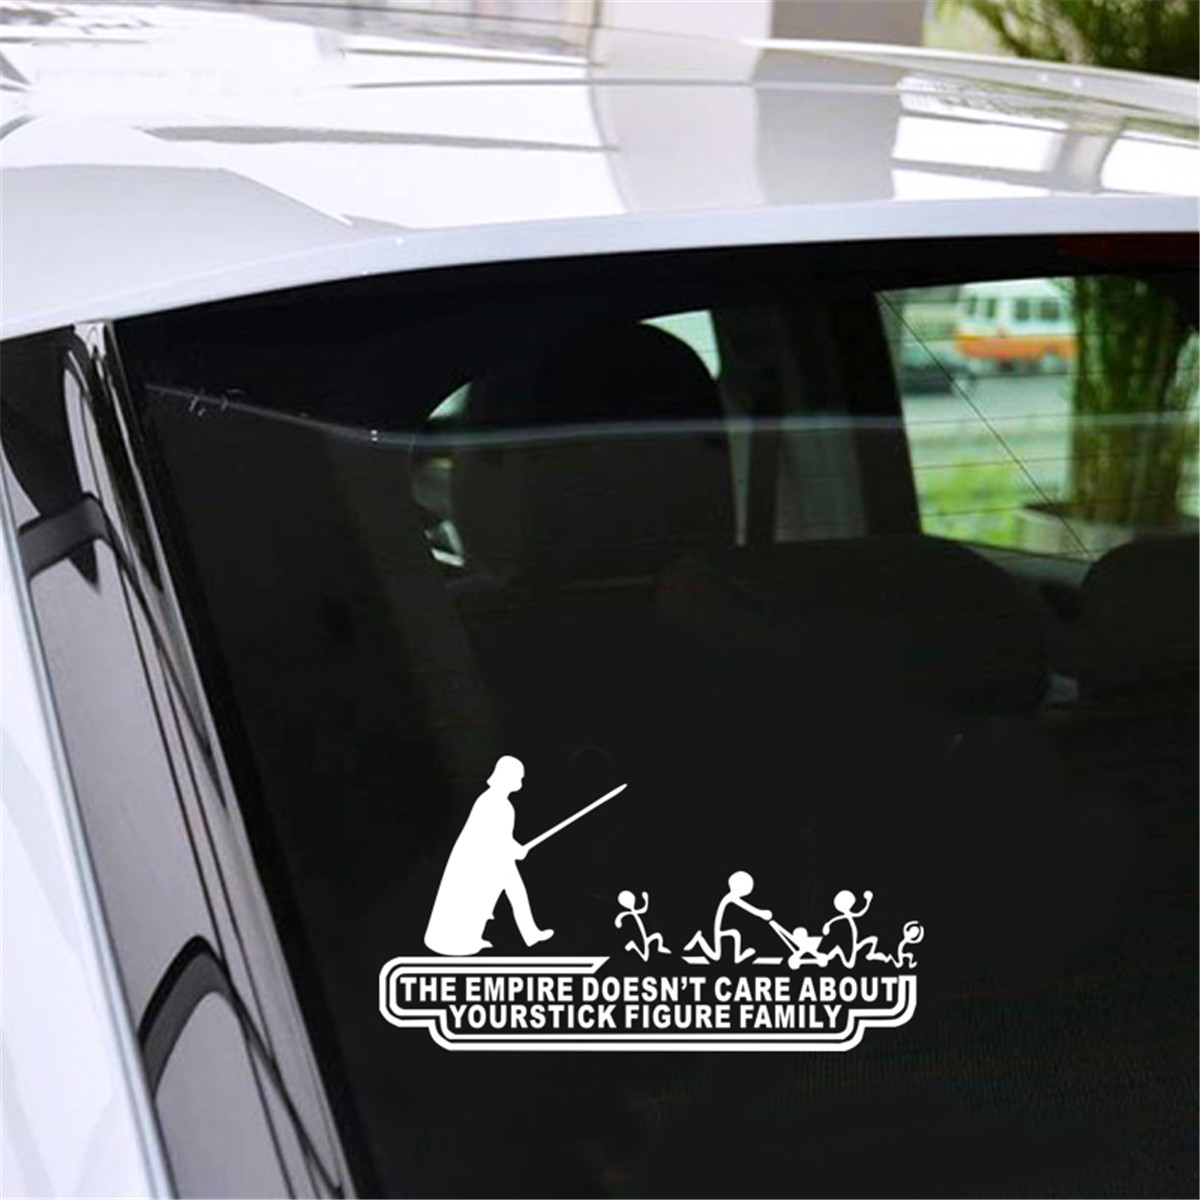 Details about star wars car sticker truck window door bumper wall laptop vinyl decal gift